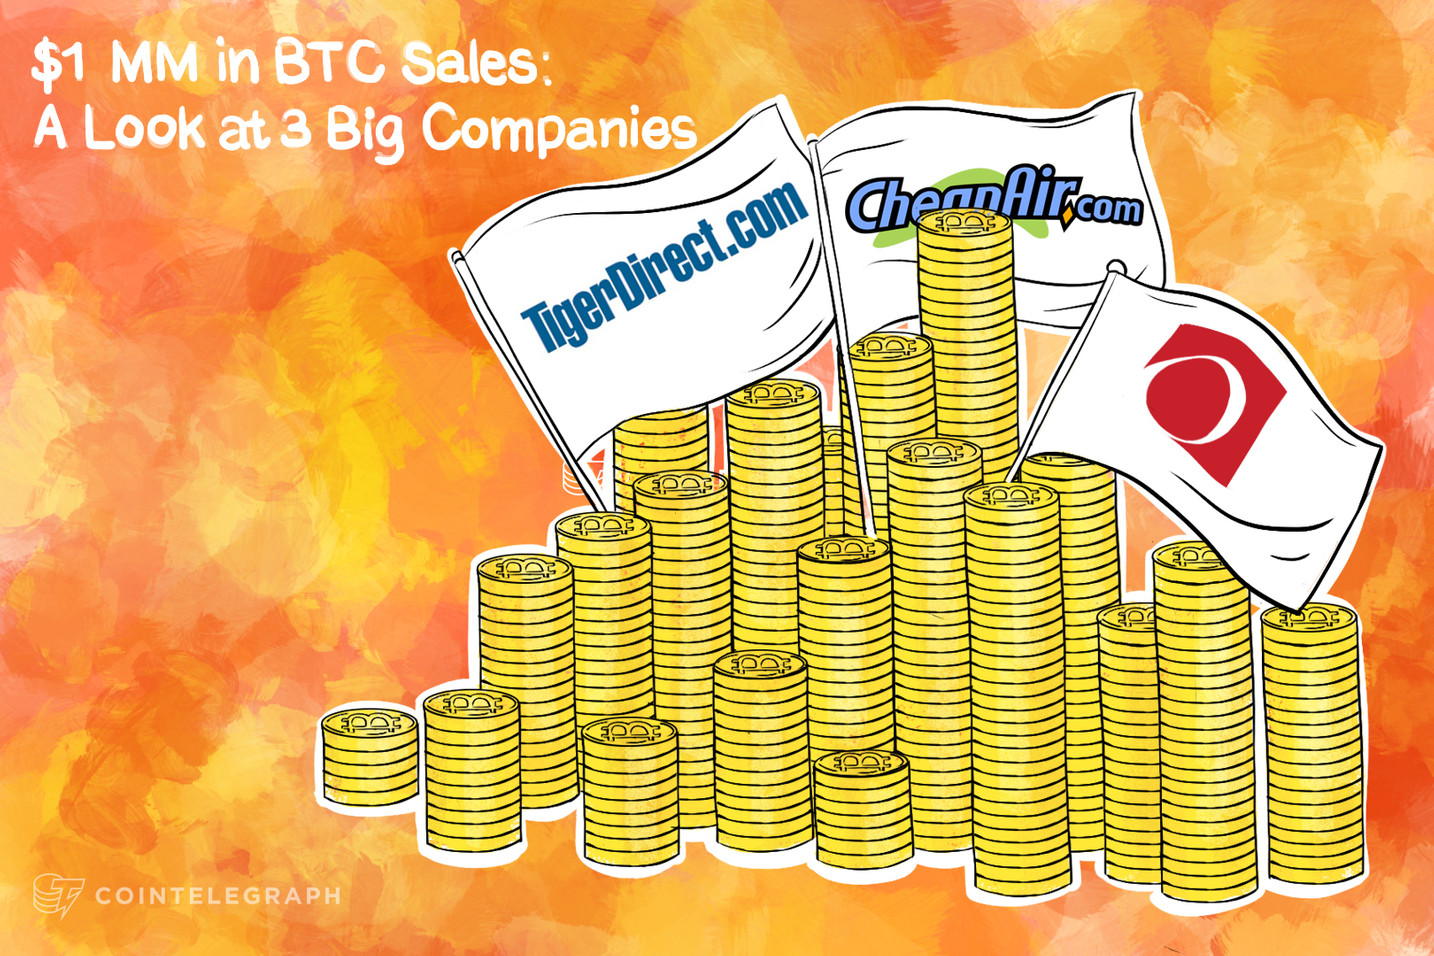 $1 MM in BTC Sales: A Look at 3 Big Companies